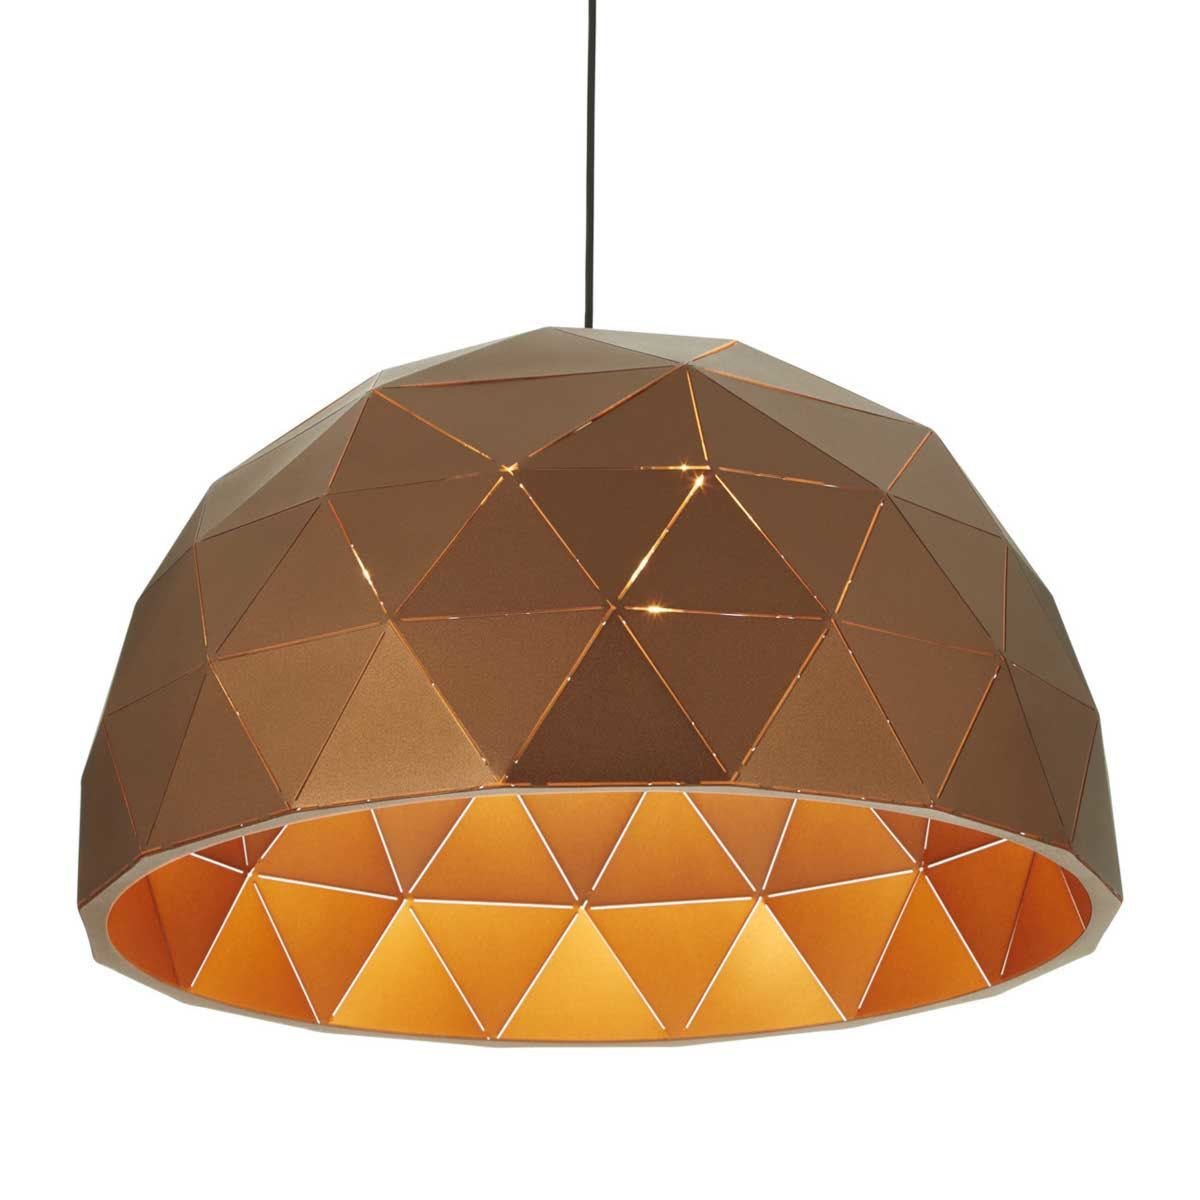 Premier Housewares Mateo Large Dome Pendant Light - Brown